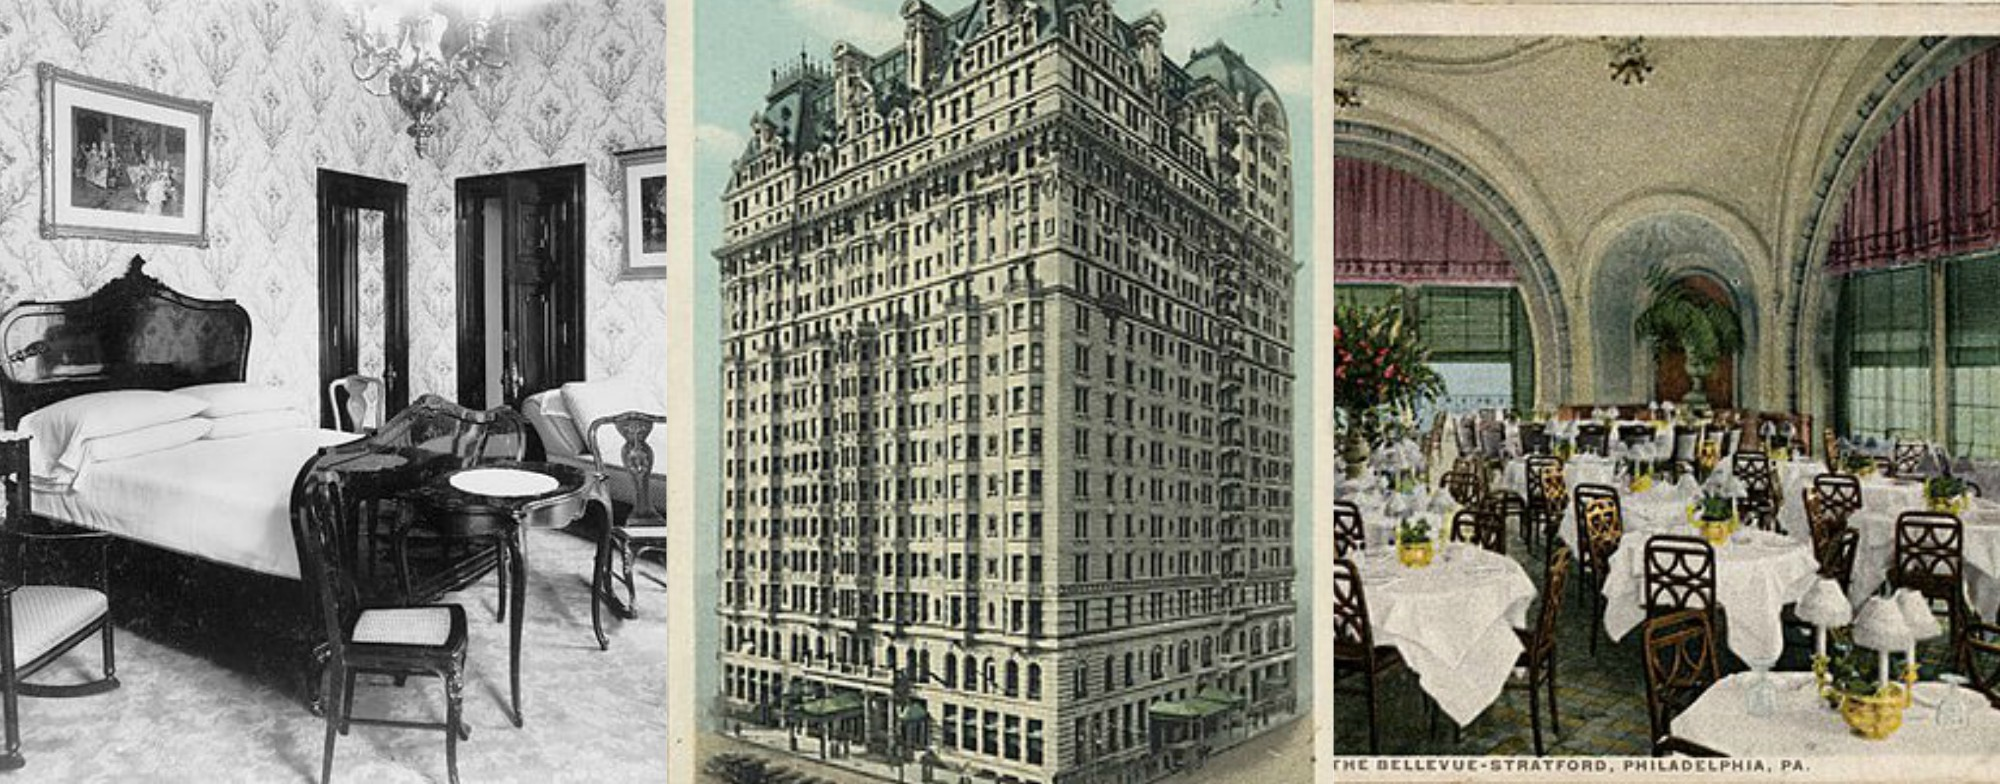 Photos of Bellevue-Stratford Hotel [Public Domain] l-r: Bedroom photo by William H. Wrau (1905); Postcard photo; South Garden